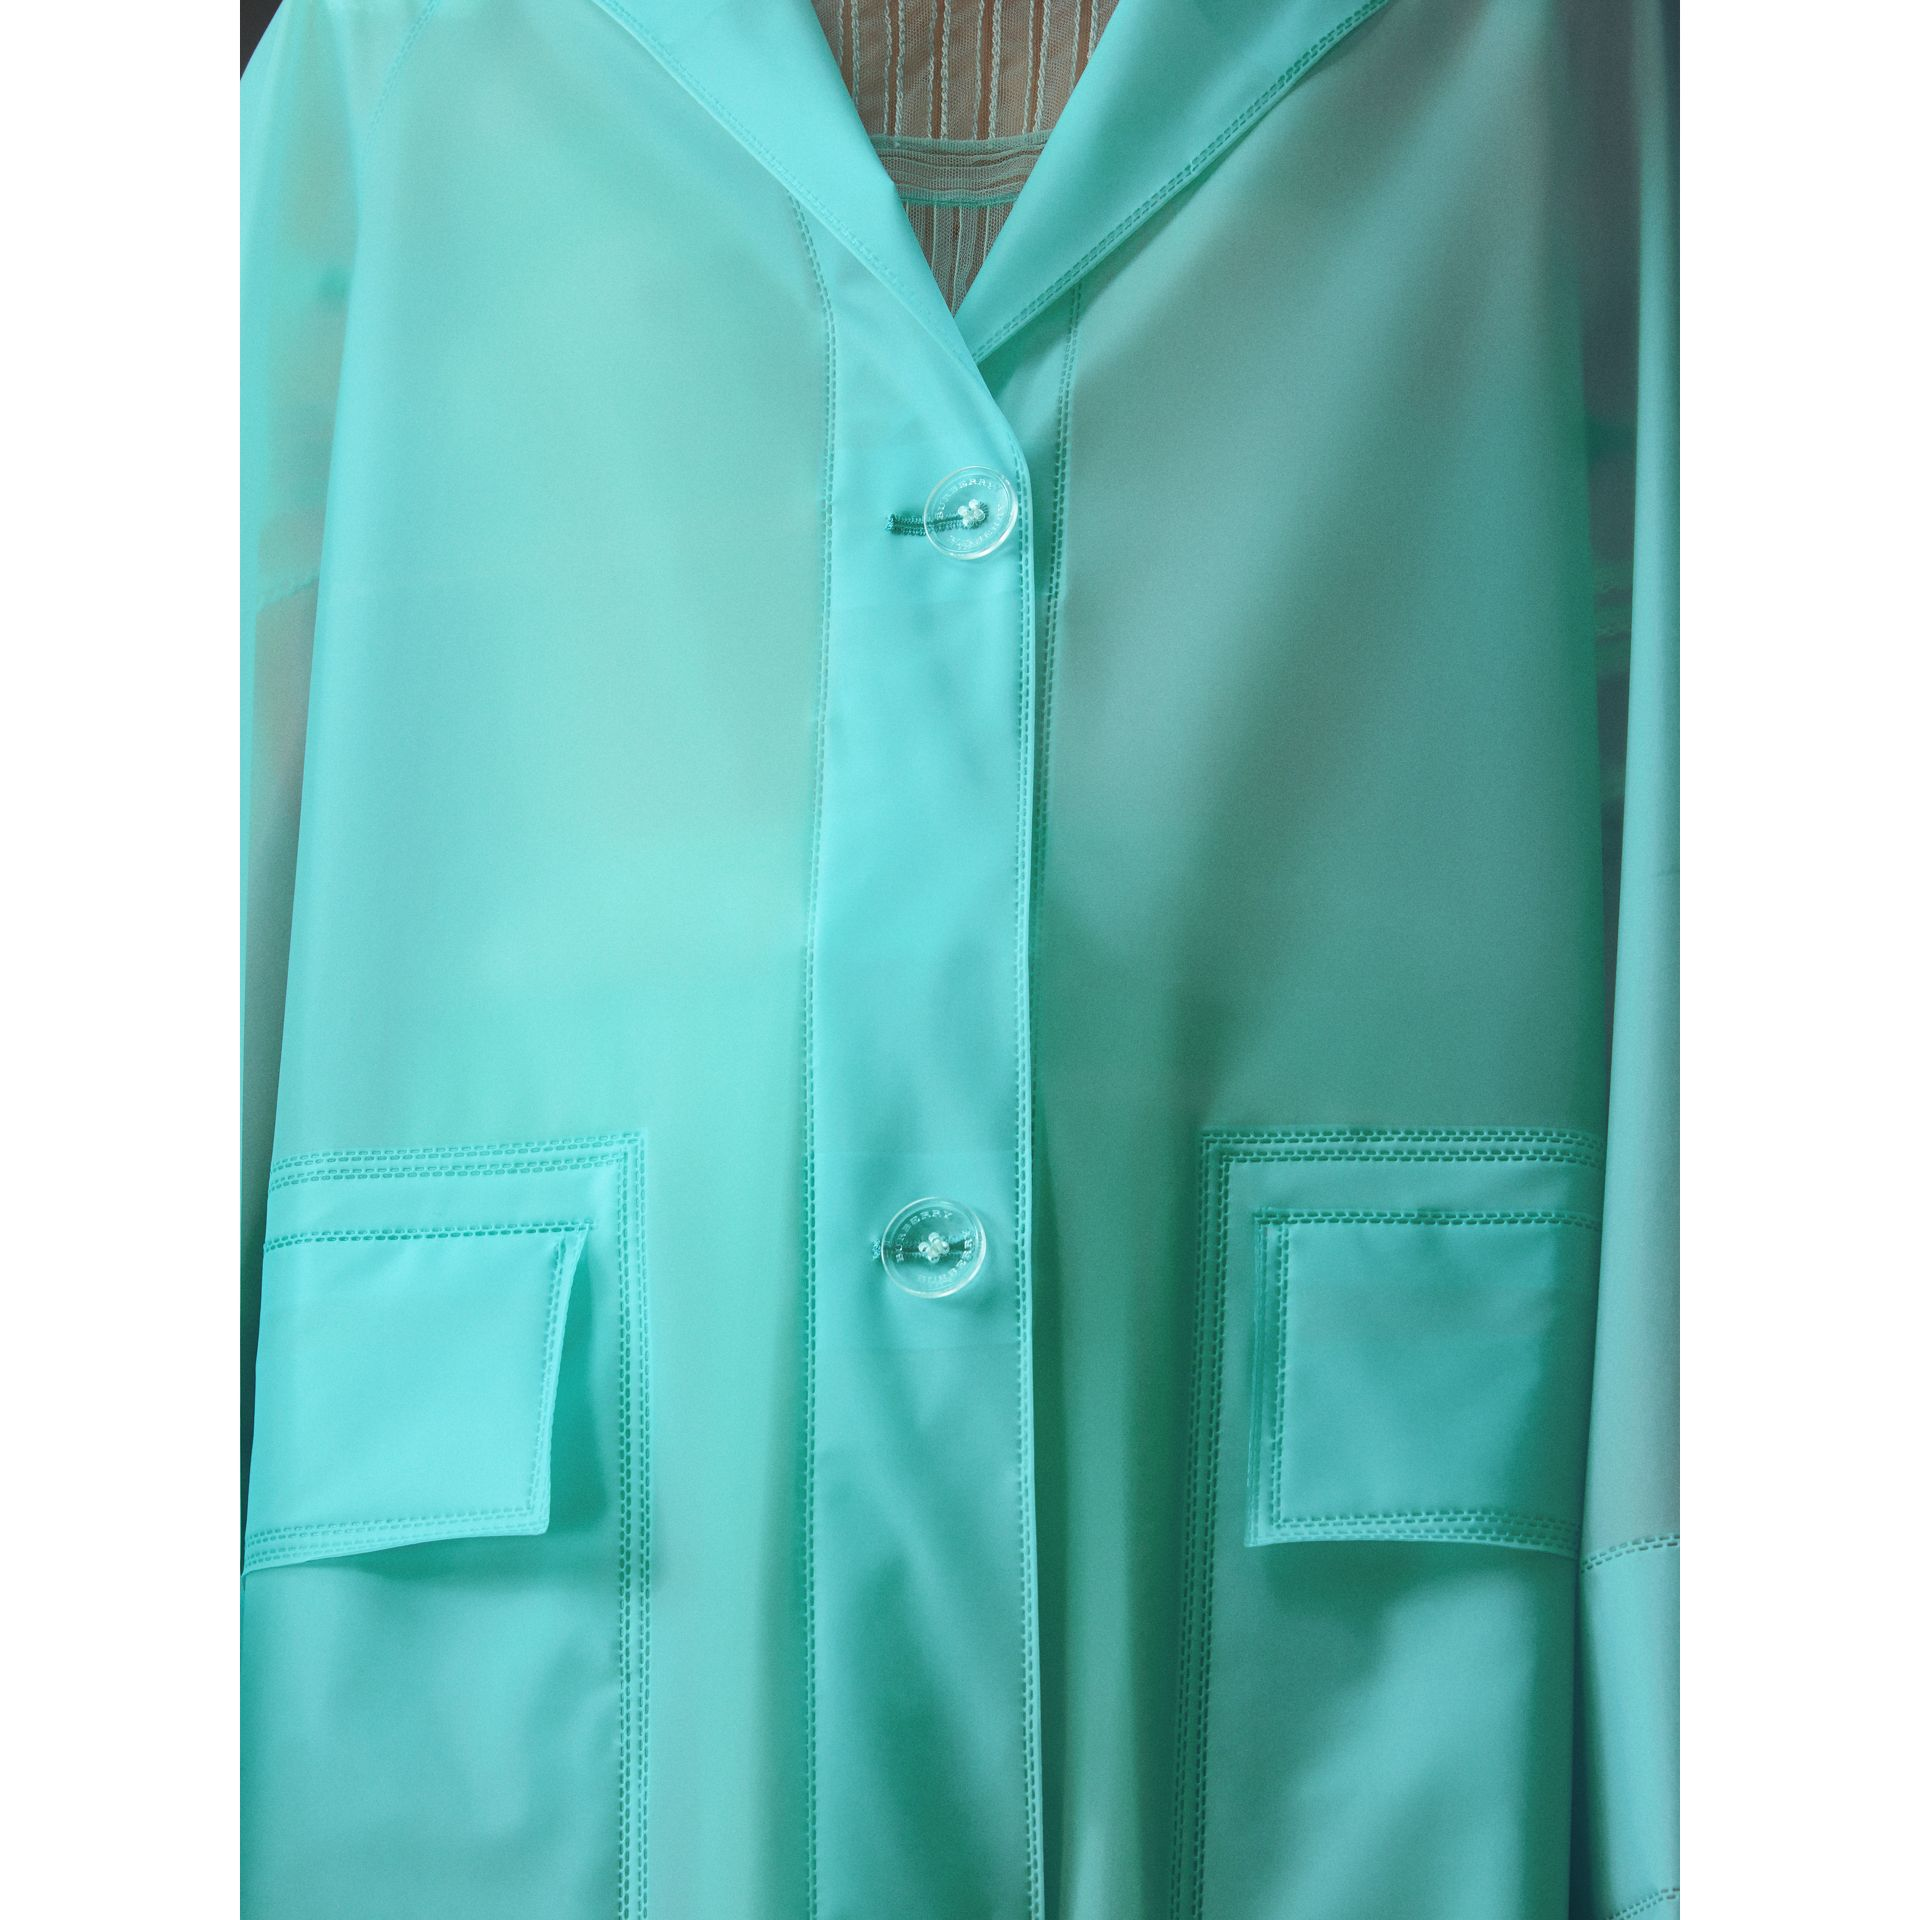 Soft-touch Plastic Car Coat in Turquoise - Women | Burberry - gallery image 1